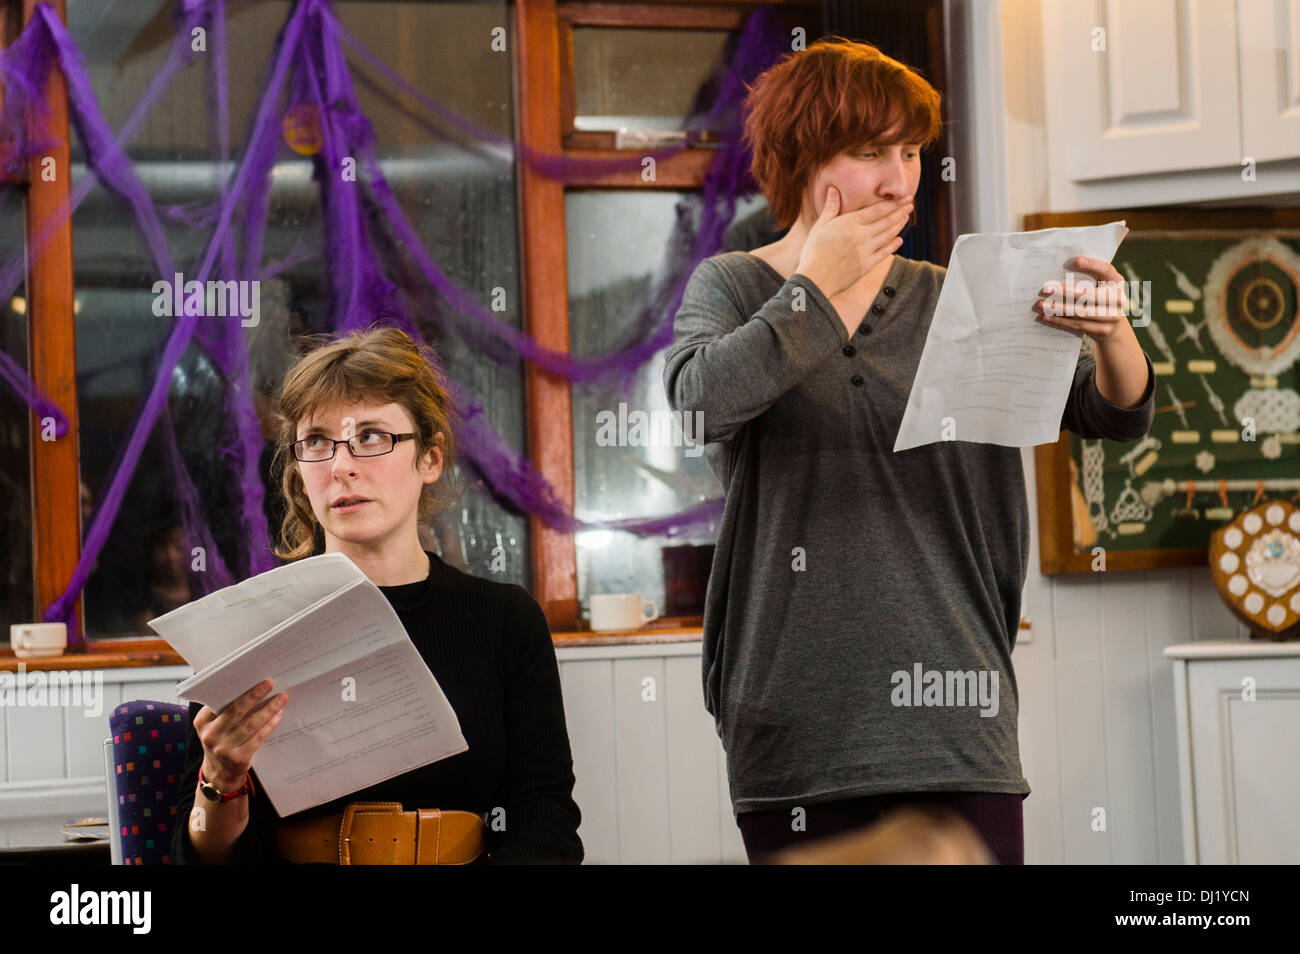 two amateur women actors reading their scripts in a rehearsal for a theatre drama play UK - Stock Image